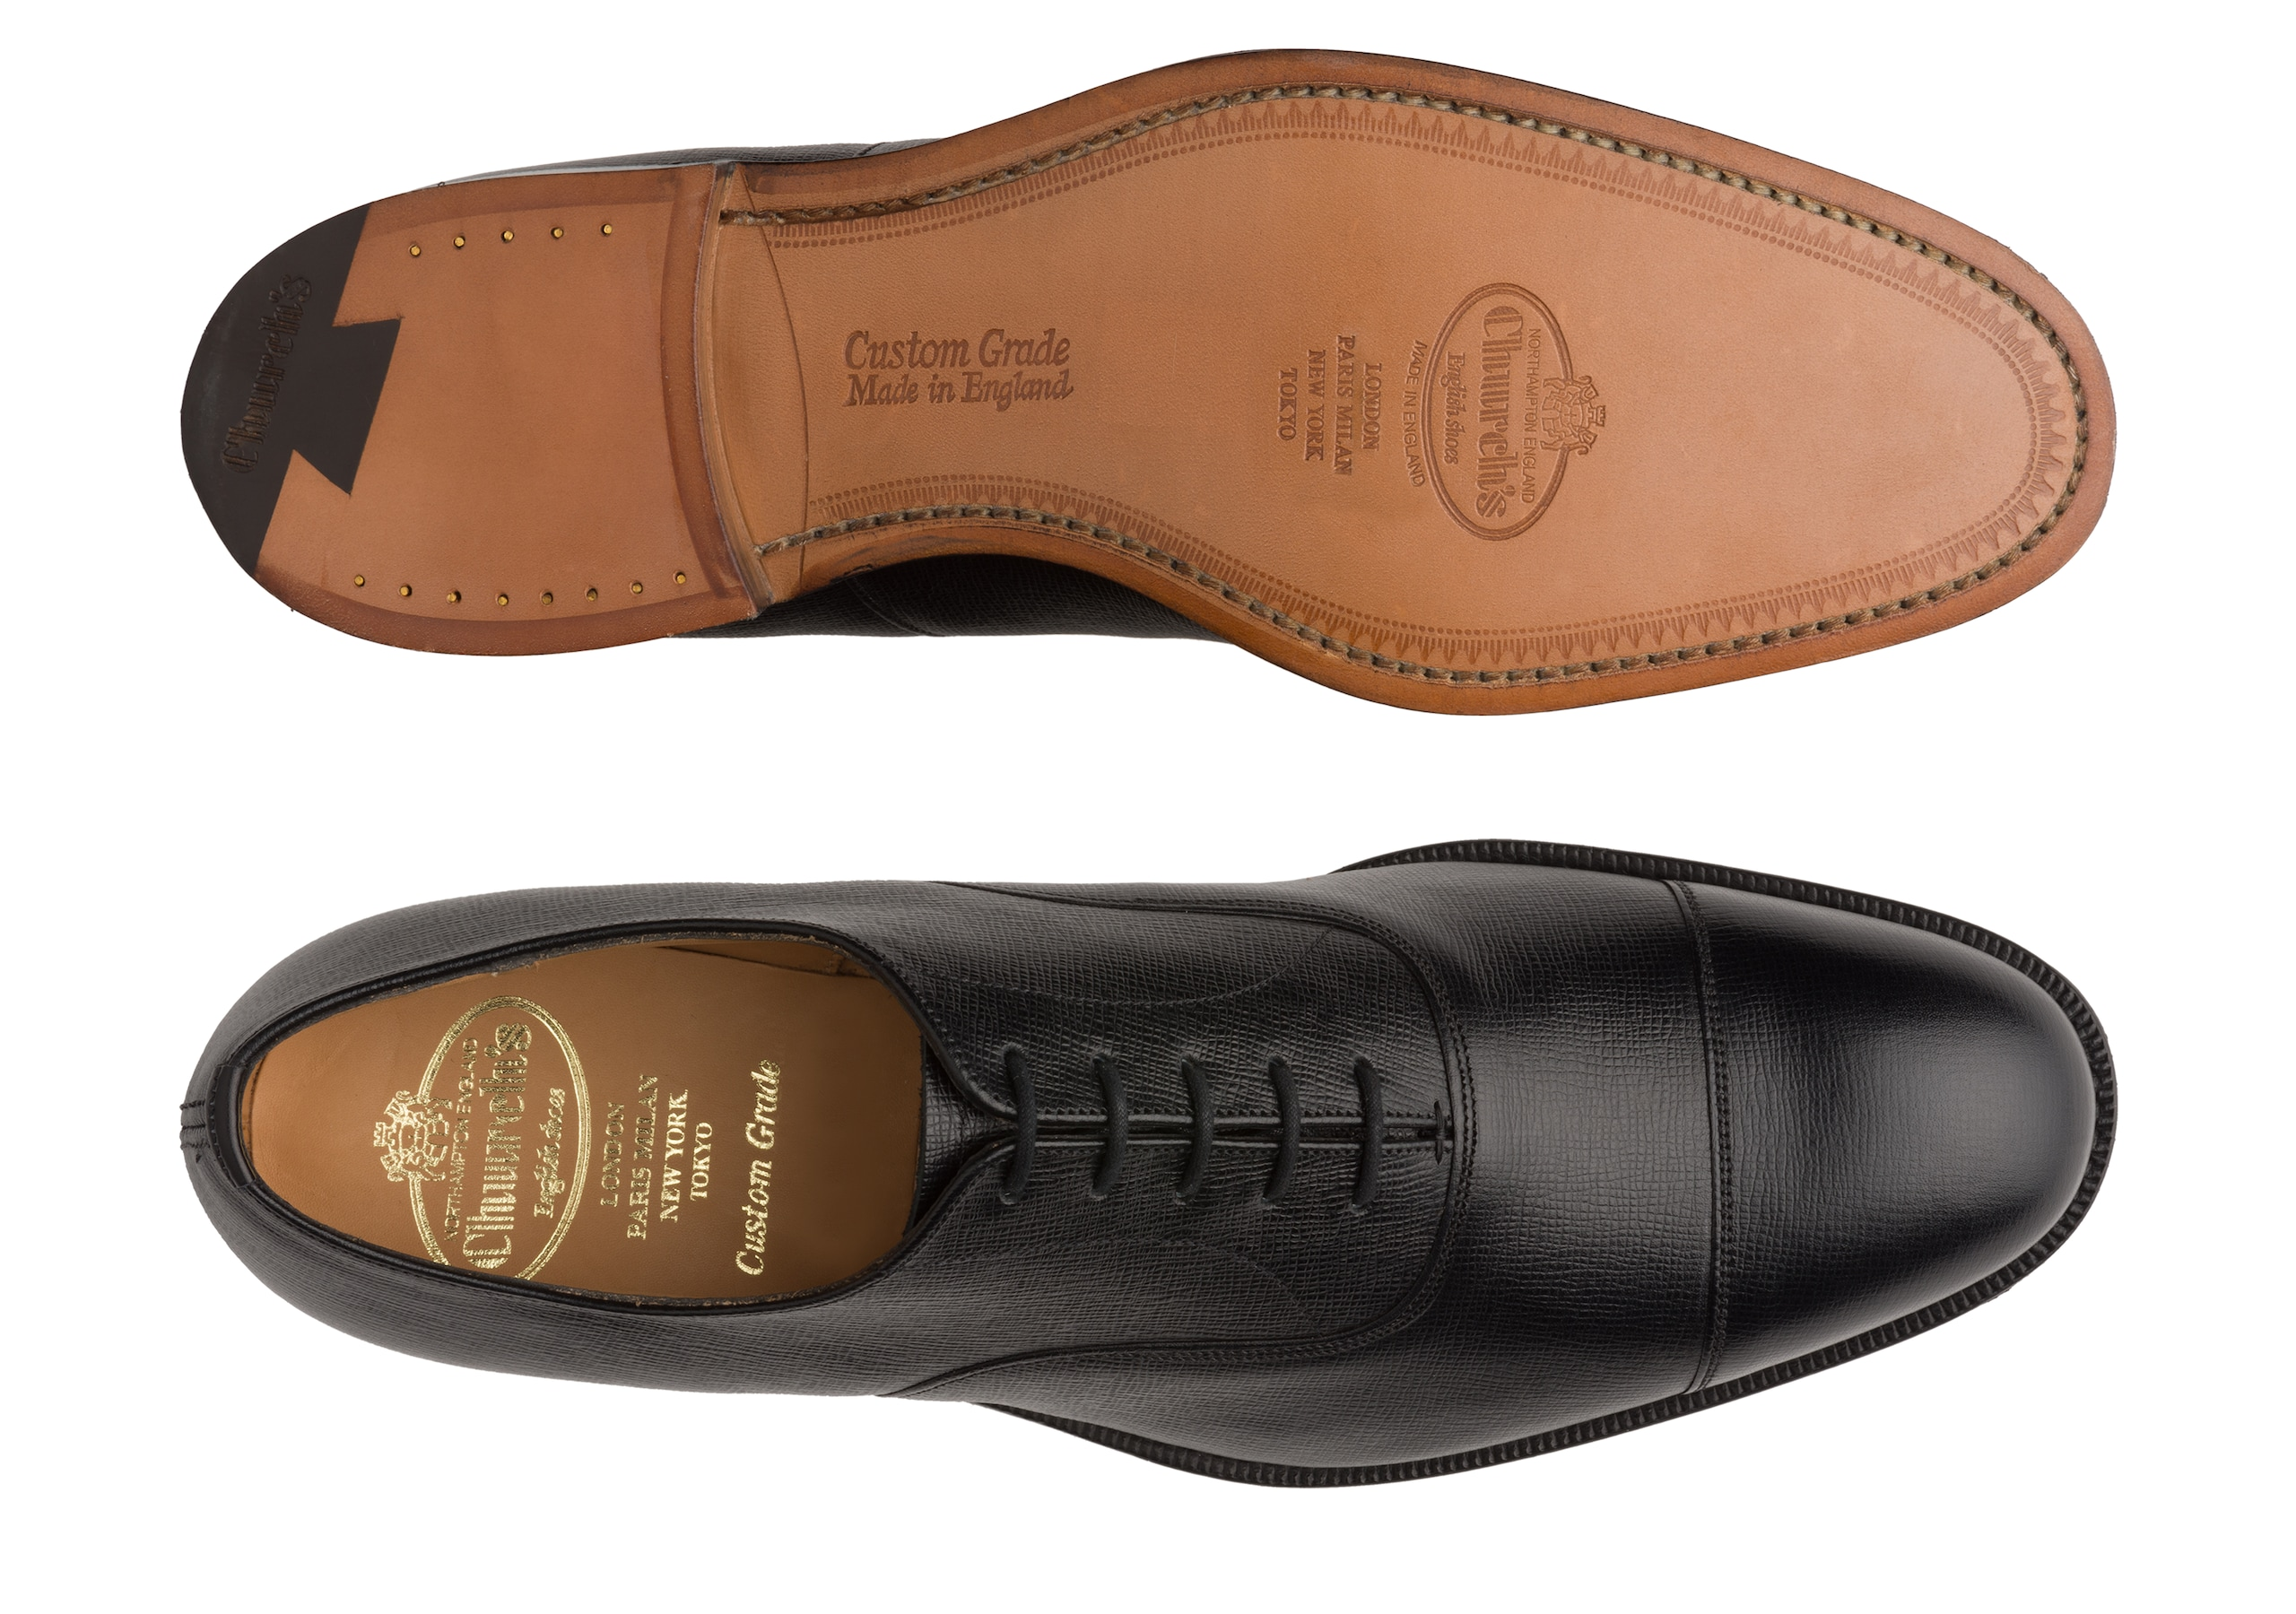 Consul 173 Church's St James Leather Oxford Black